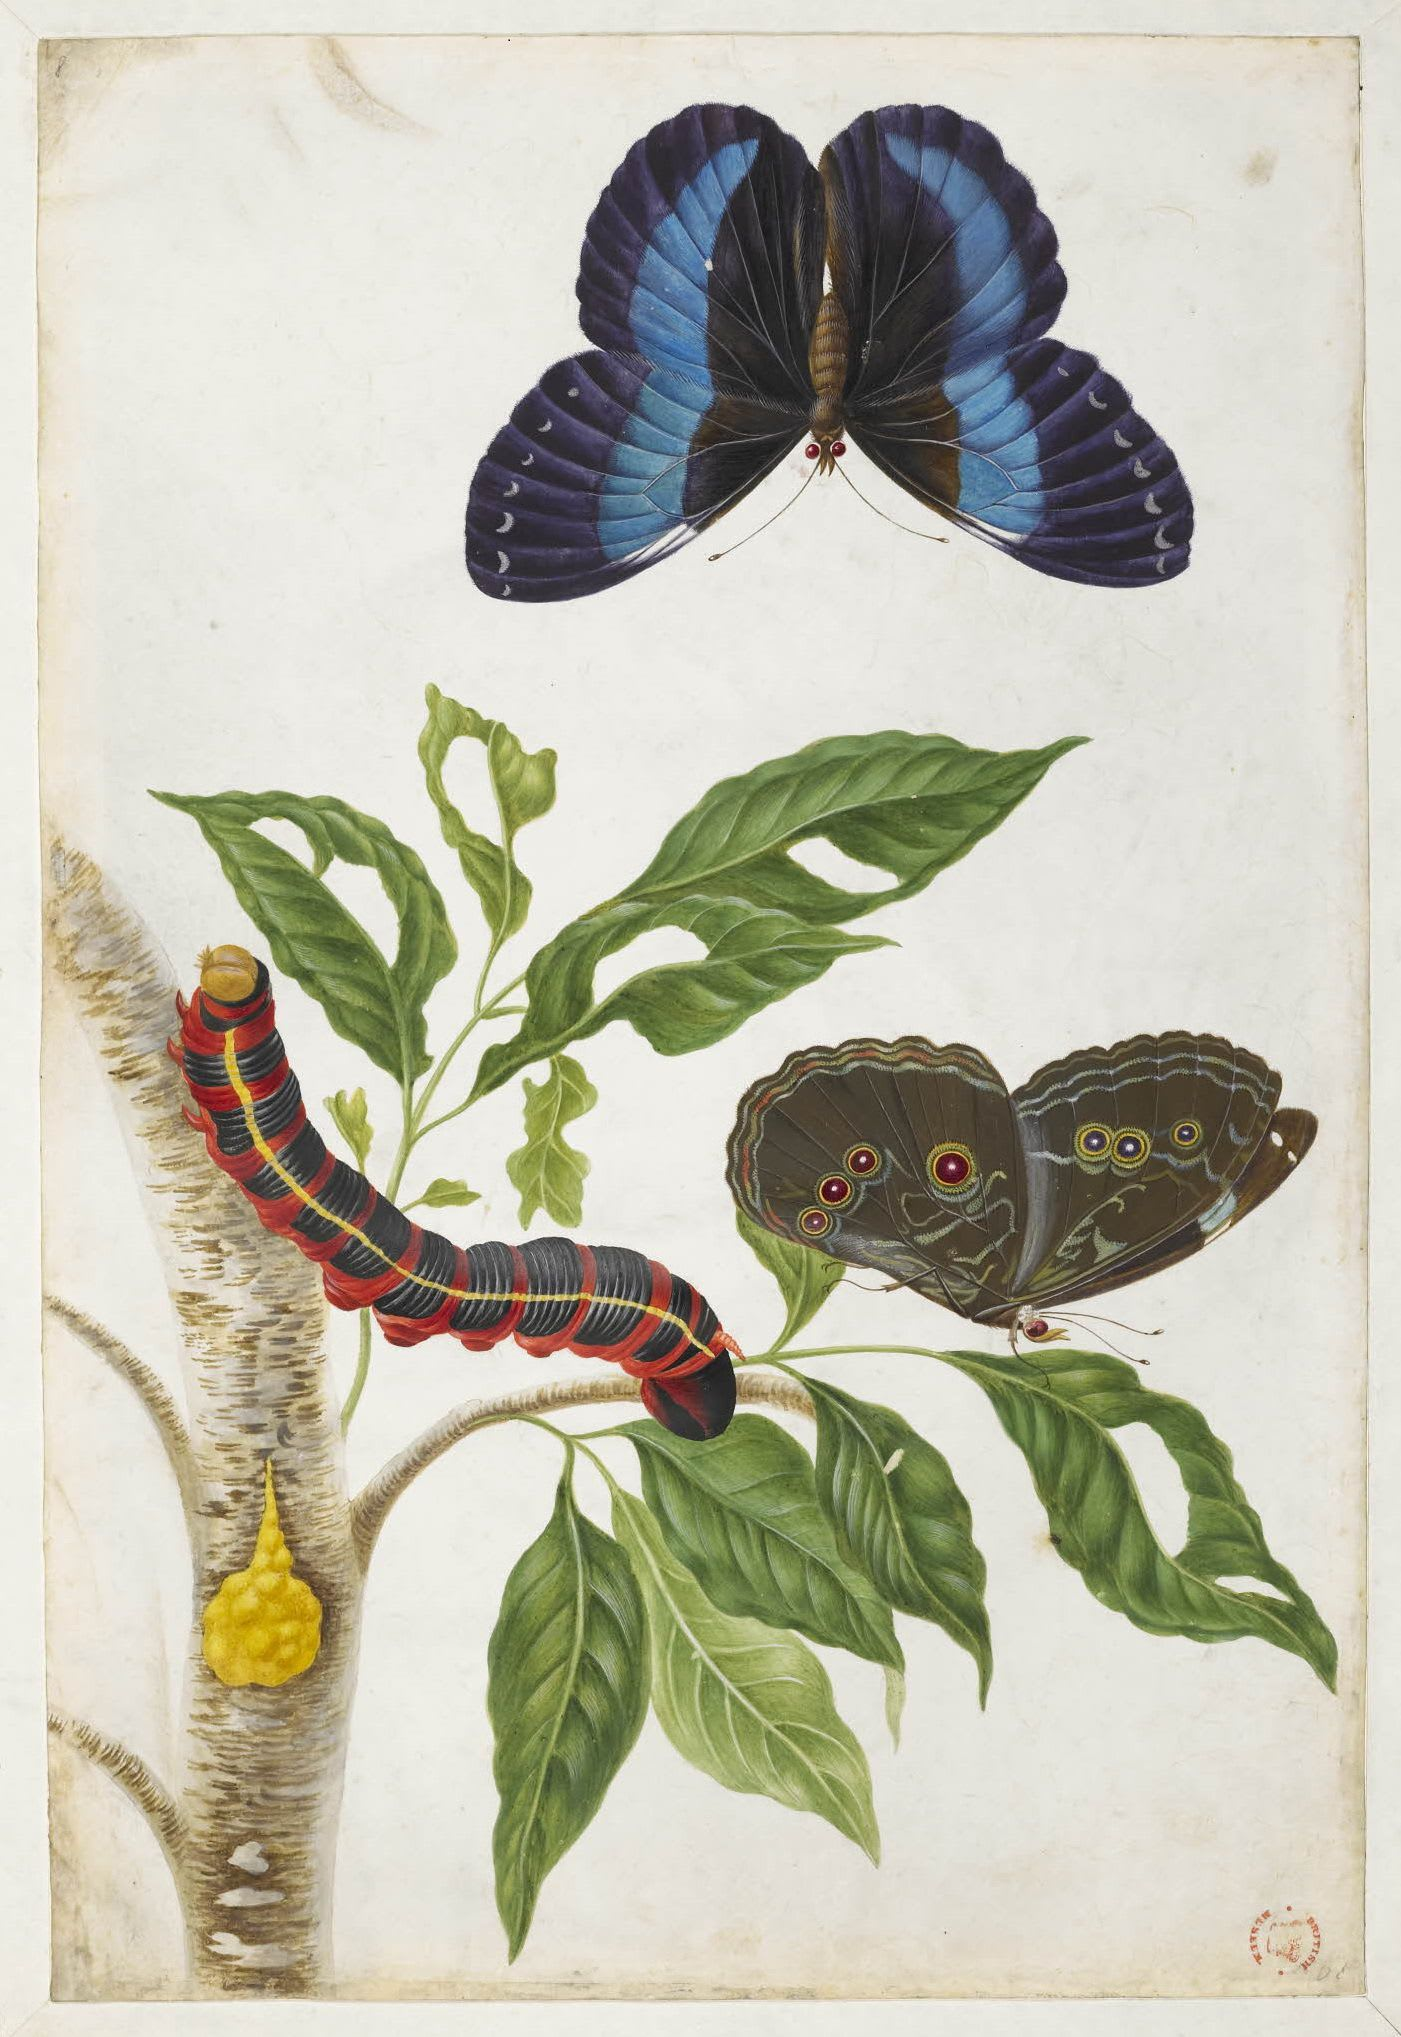 Untitled (Two examples of a blue butterfly), c.1701-1705, Maria Sibylla  Merian. © Trustees of the British Museum